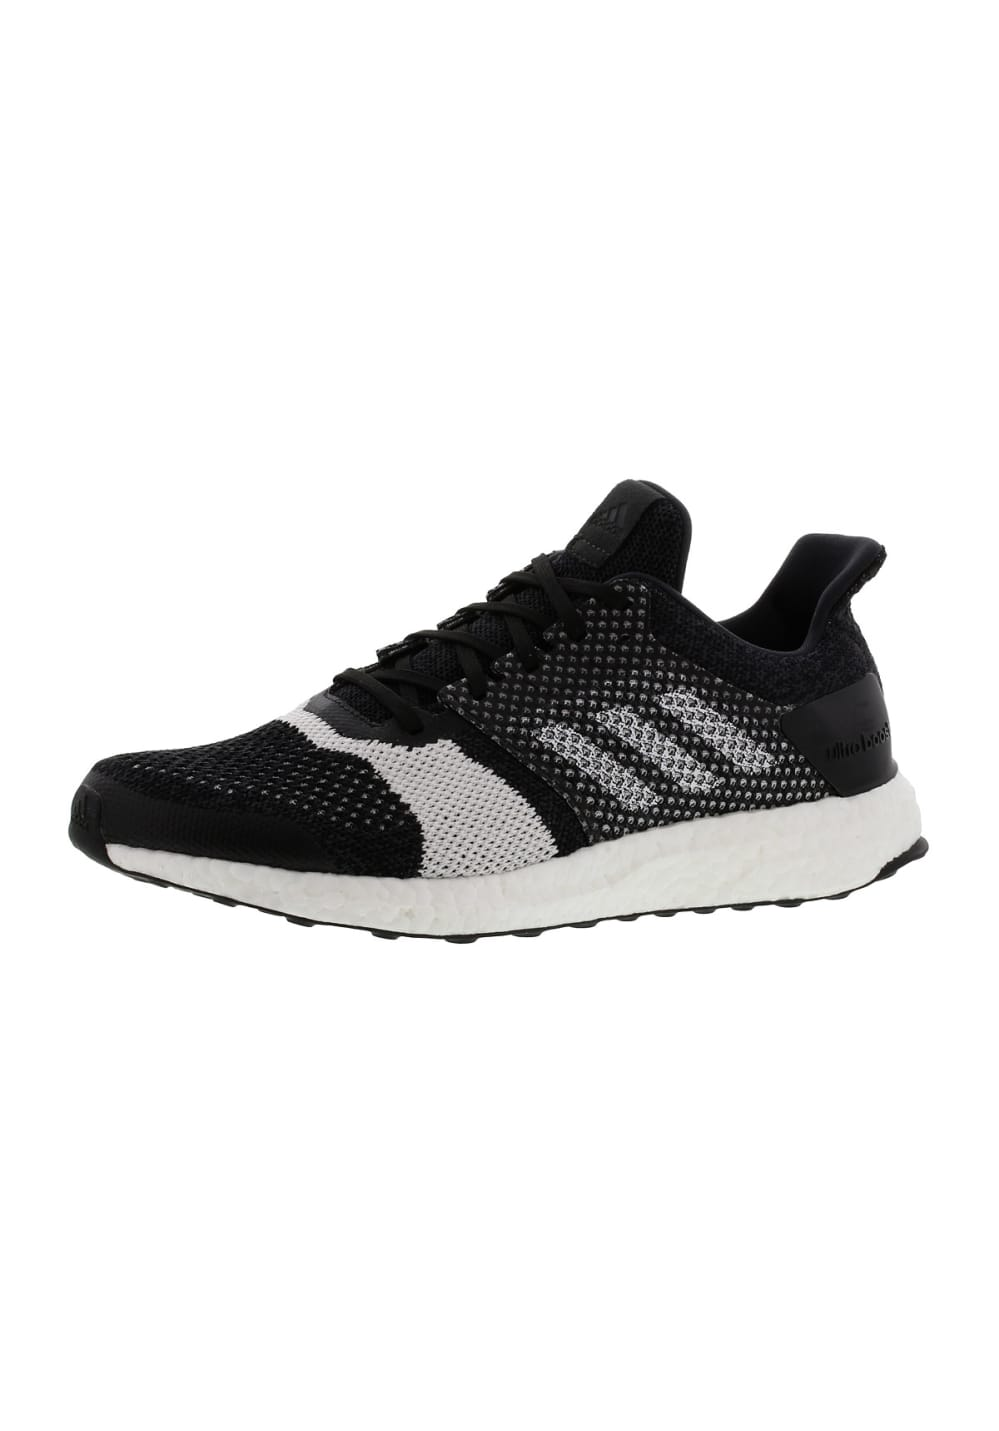 e3877357cedce Ultraboost ST Parley Shoes Source · adidas Ultra Boost St Running shoes for  Men Black 21RUN